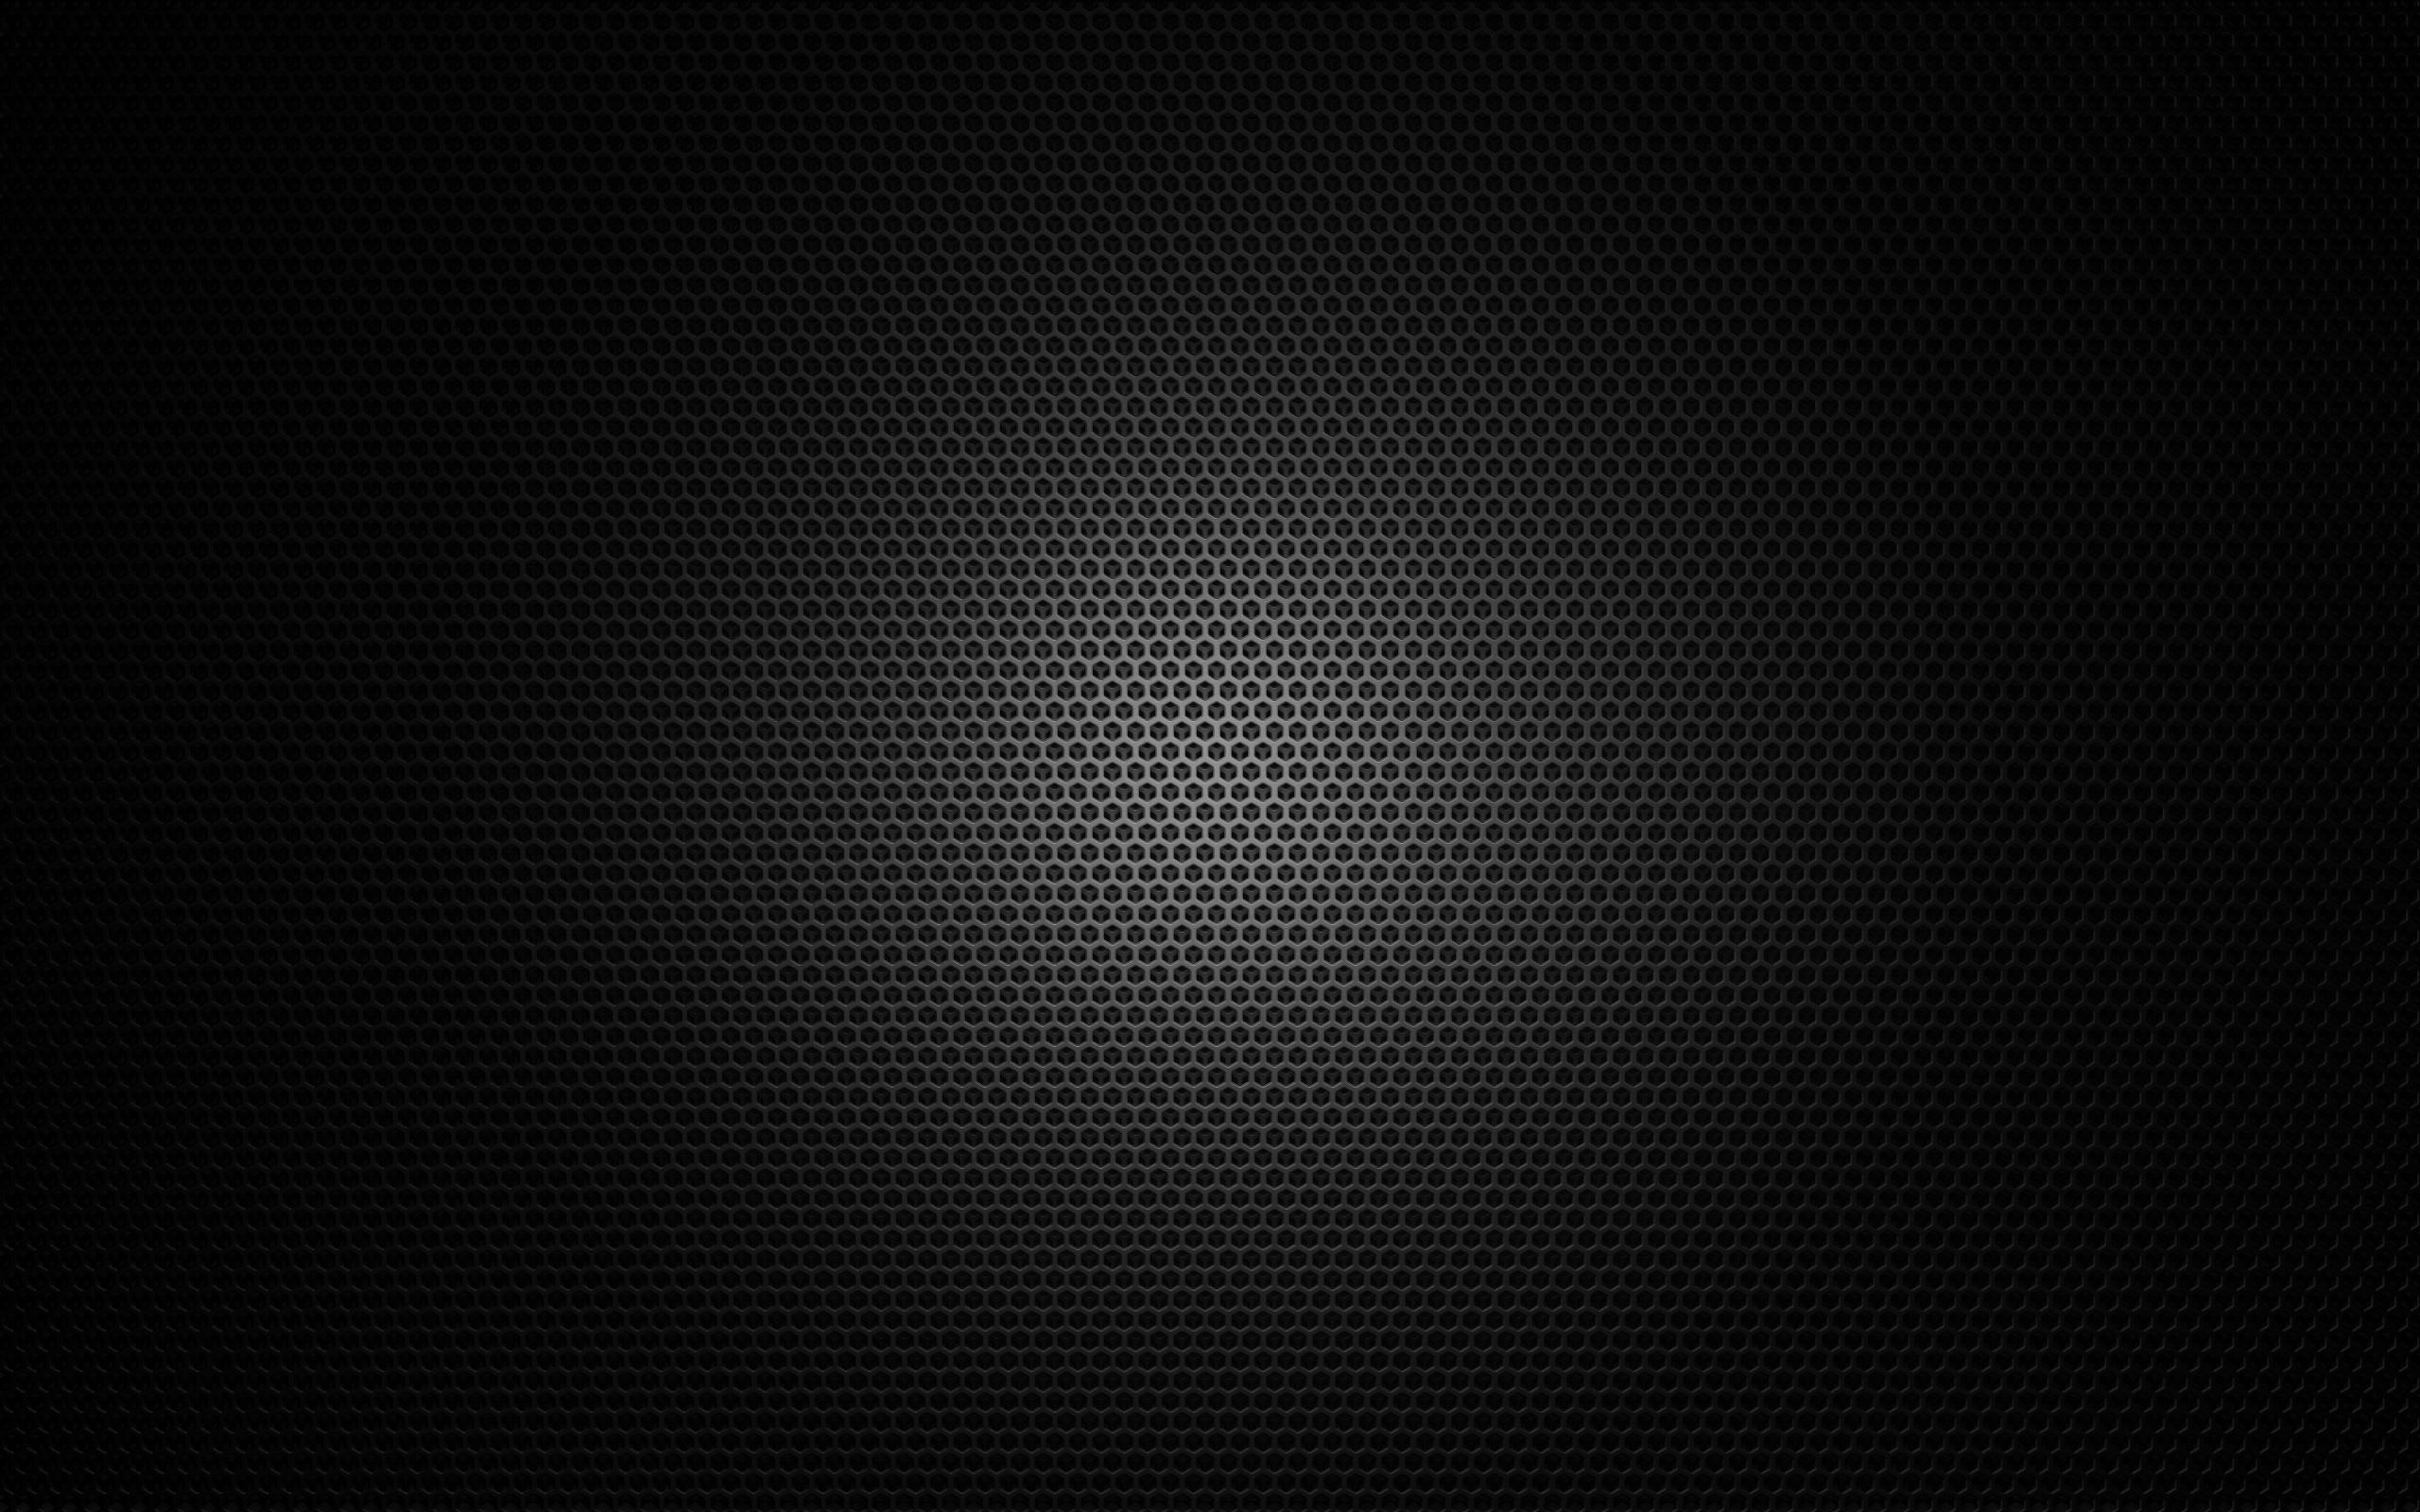 Black Carbon Wallpapers 1679 Wallpapers